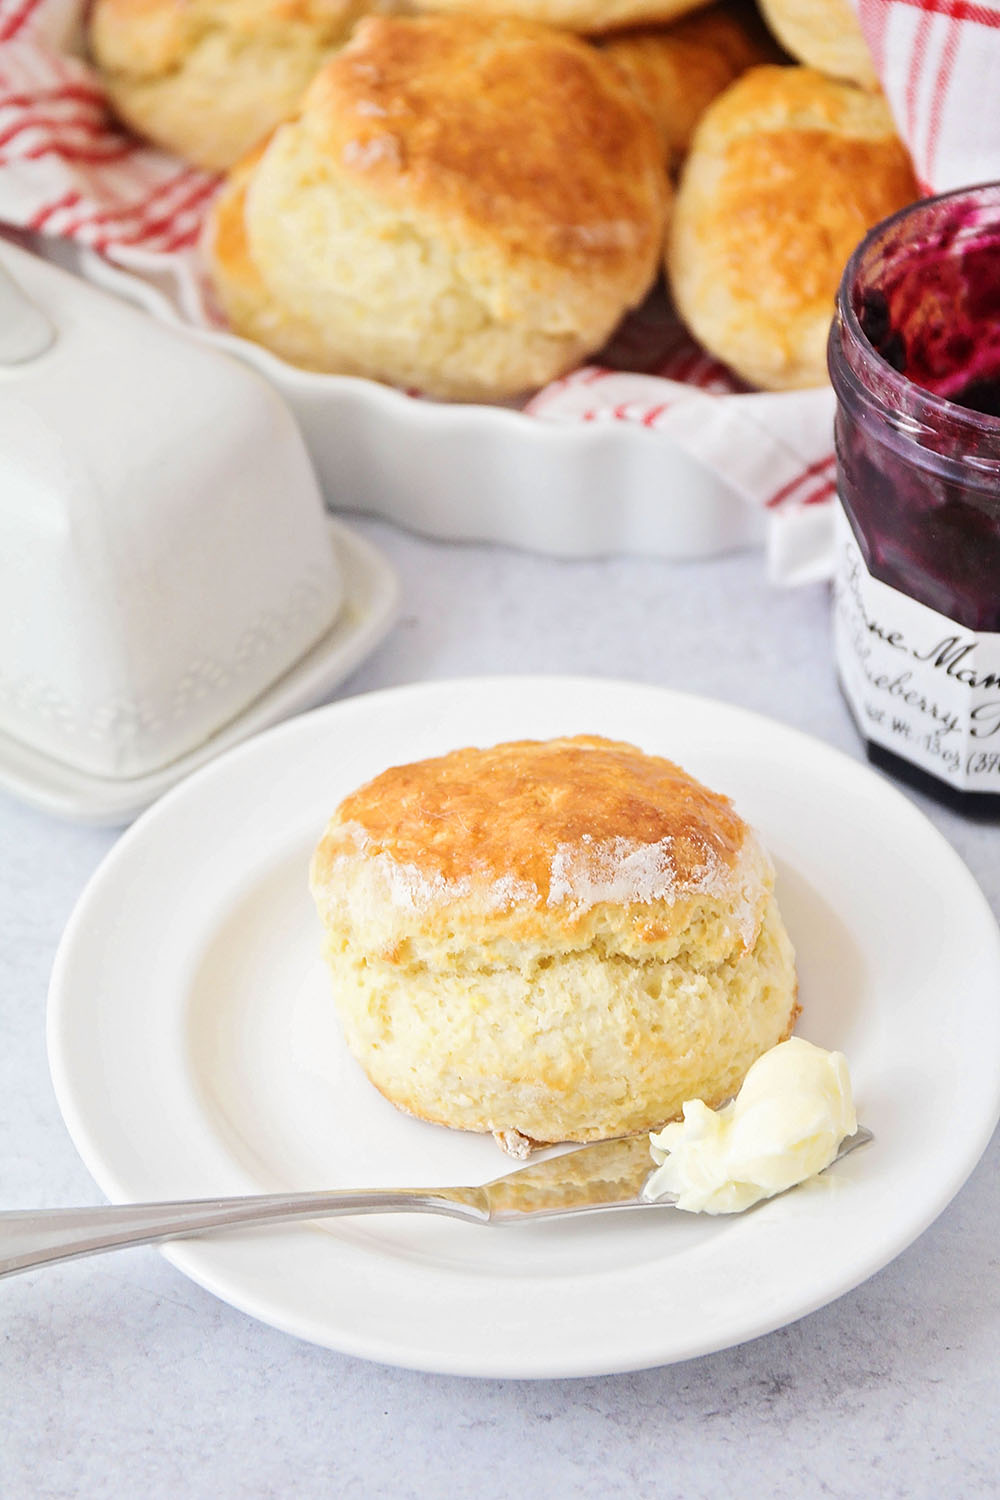 These scones are perfectly light and tender, and totally delicious! Paul Hollywood's recipe makes the ideal scone!